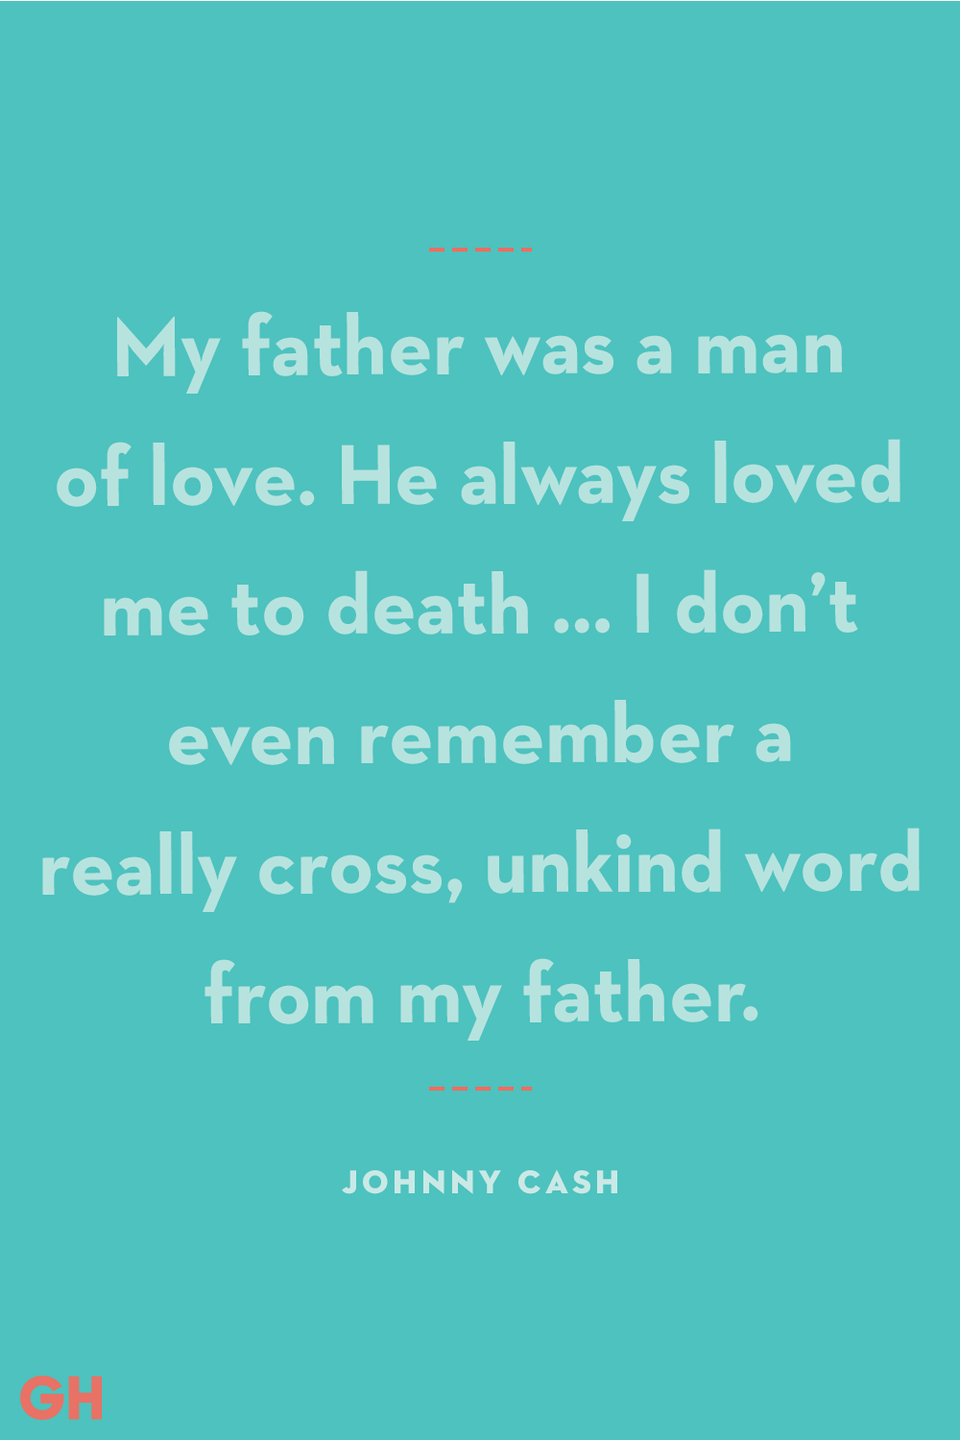 """<p>My father was a man of love. He always loved me to death … I don't even remember a really cross, unkind word from my father.</p><p><strong>RELATED:</strong> <a href=""""https://www.goodhousekeeping.com/holidays/fathers-day/g21274147/last-minute-fathers-day-gifts/"""" rel=""""nofollow noopener"""" target=""""_blank"""" data-ylk=""""slk:20 Last-Minute Father's Day Gifts That Still Look Thoughtful"""" class=""""link rapid-noclick-resp"""">20 Last-Minute Father's Day Gifts That Still Look Thoughtful</a></p>"""